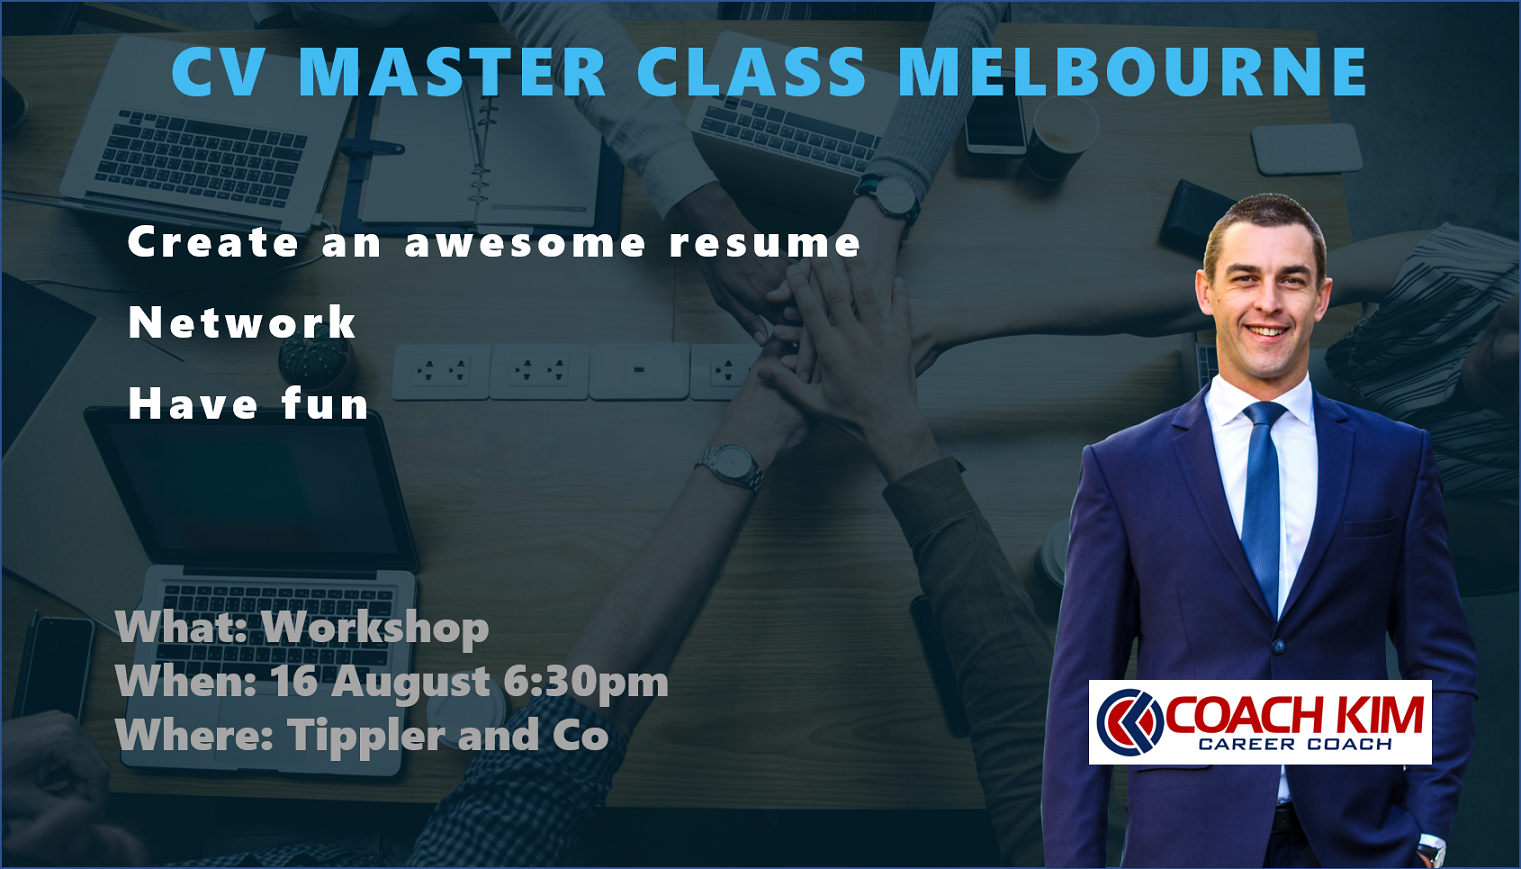 CV and Network Master Class. 6:30pm 16 August